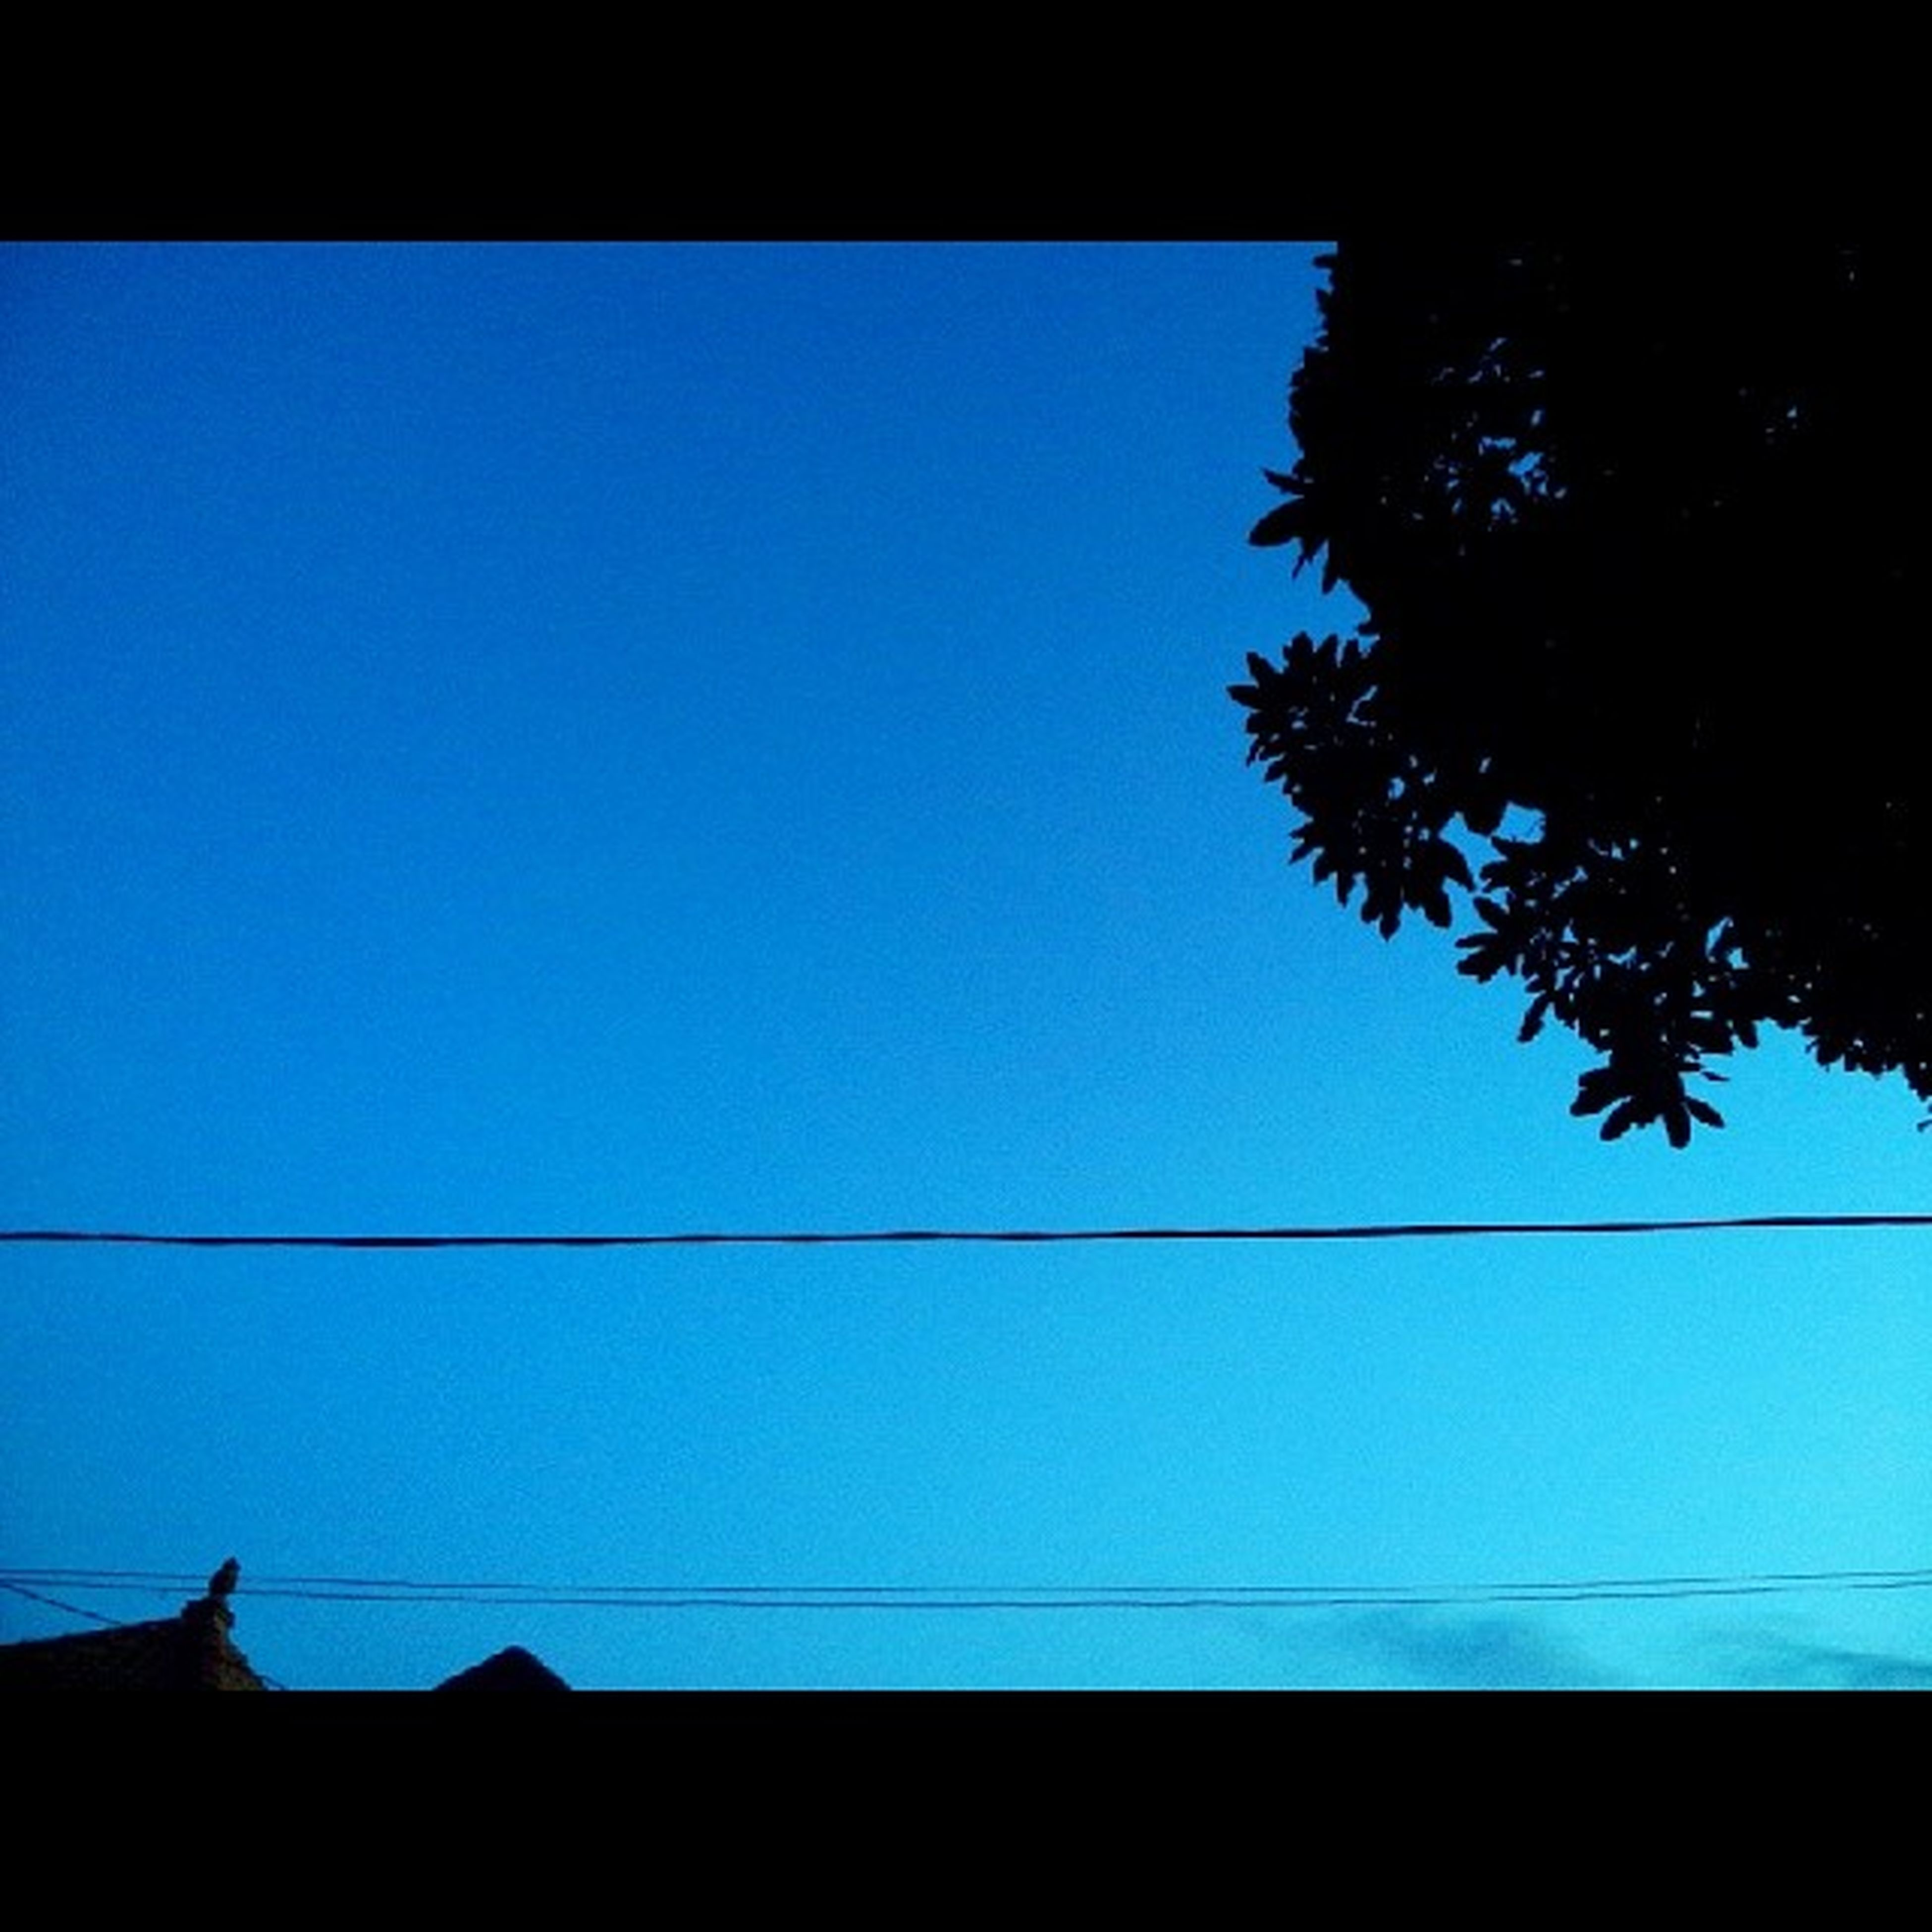 clear sky, low angle view, blue, copy space, tree, silhouette, power line, high section, built structure, sky, architecture, house, nature, roof, branch, building exterior, no people, outdoors, day, beauty in nature